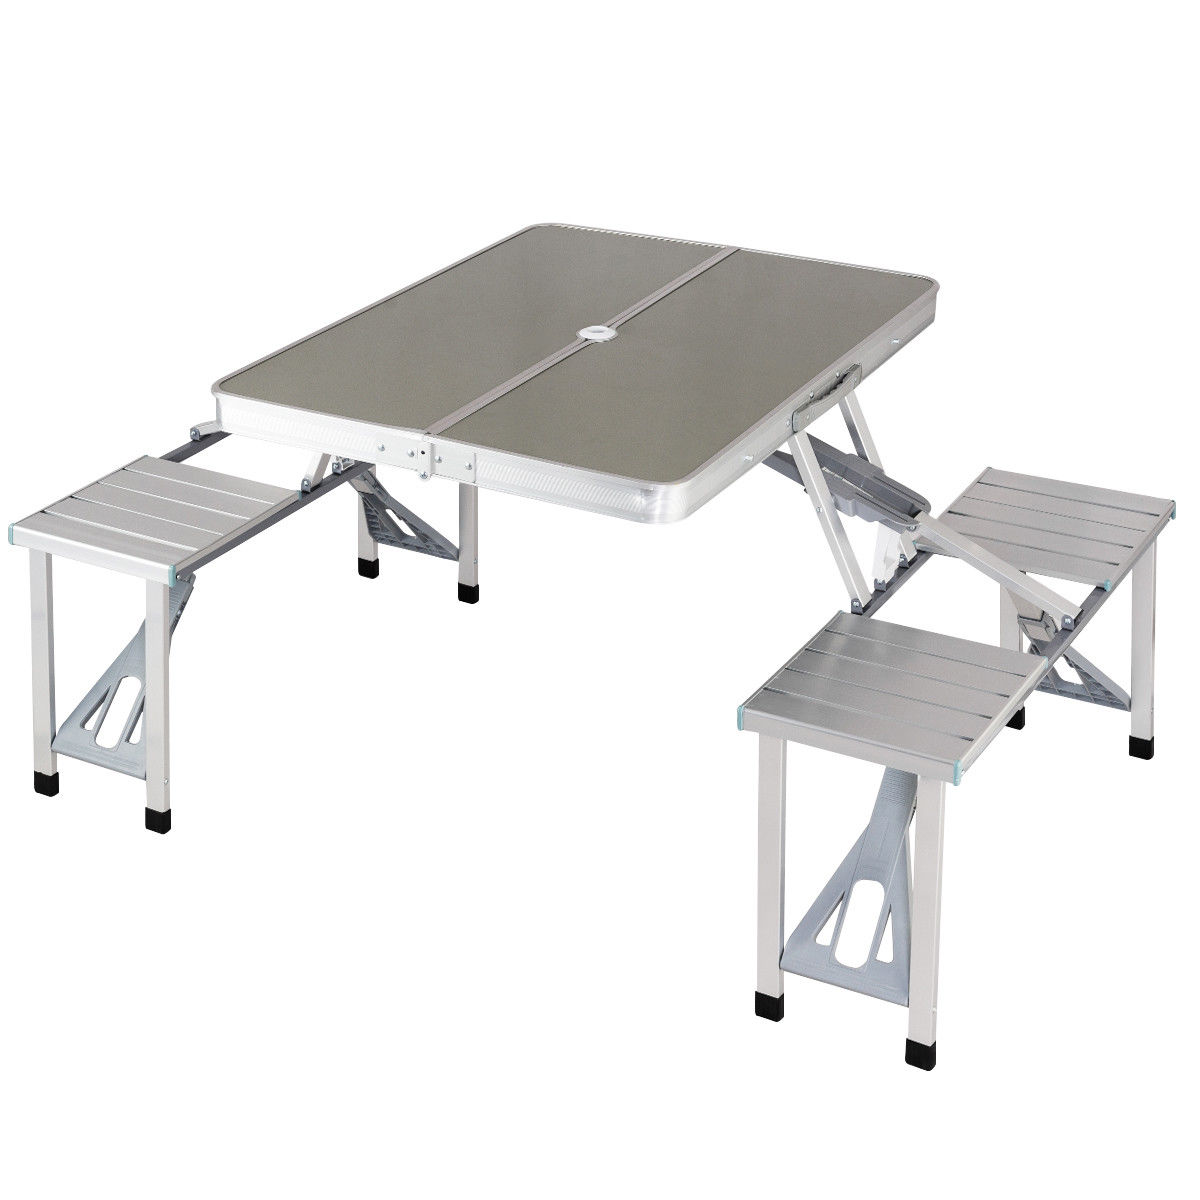 Costway Aluminum Portable Folding Picnic Table Camping Suitcase w  Bench 4 Seat Outdoor by Costway